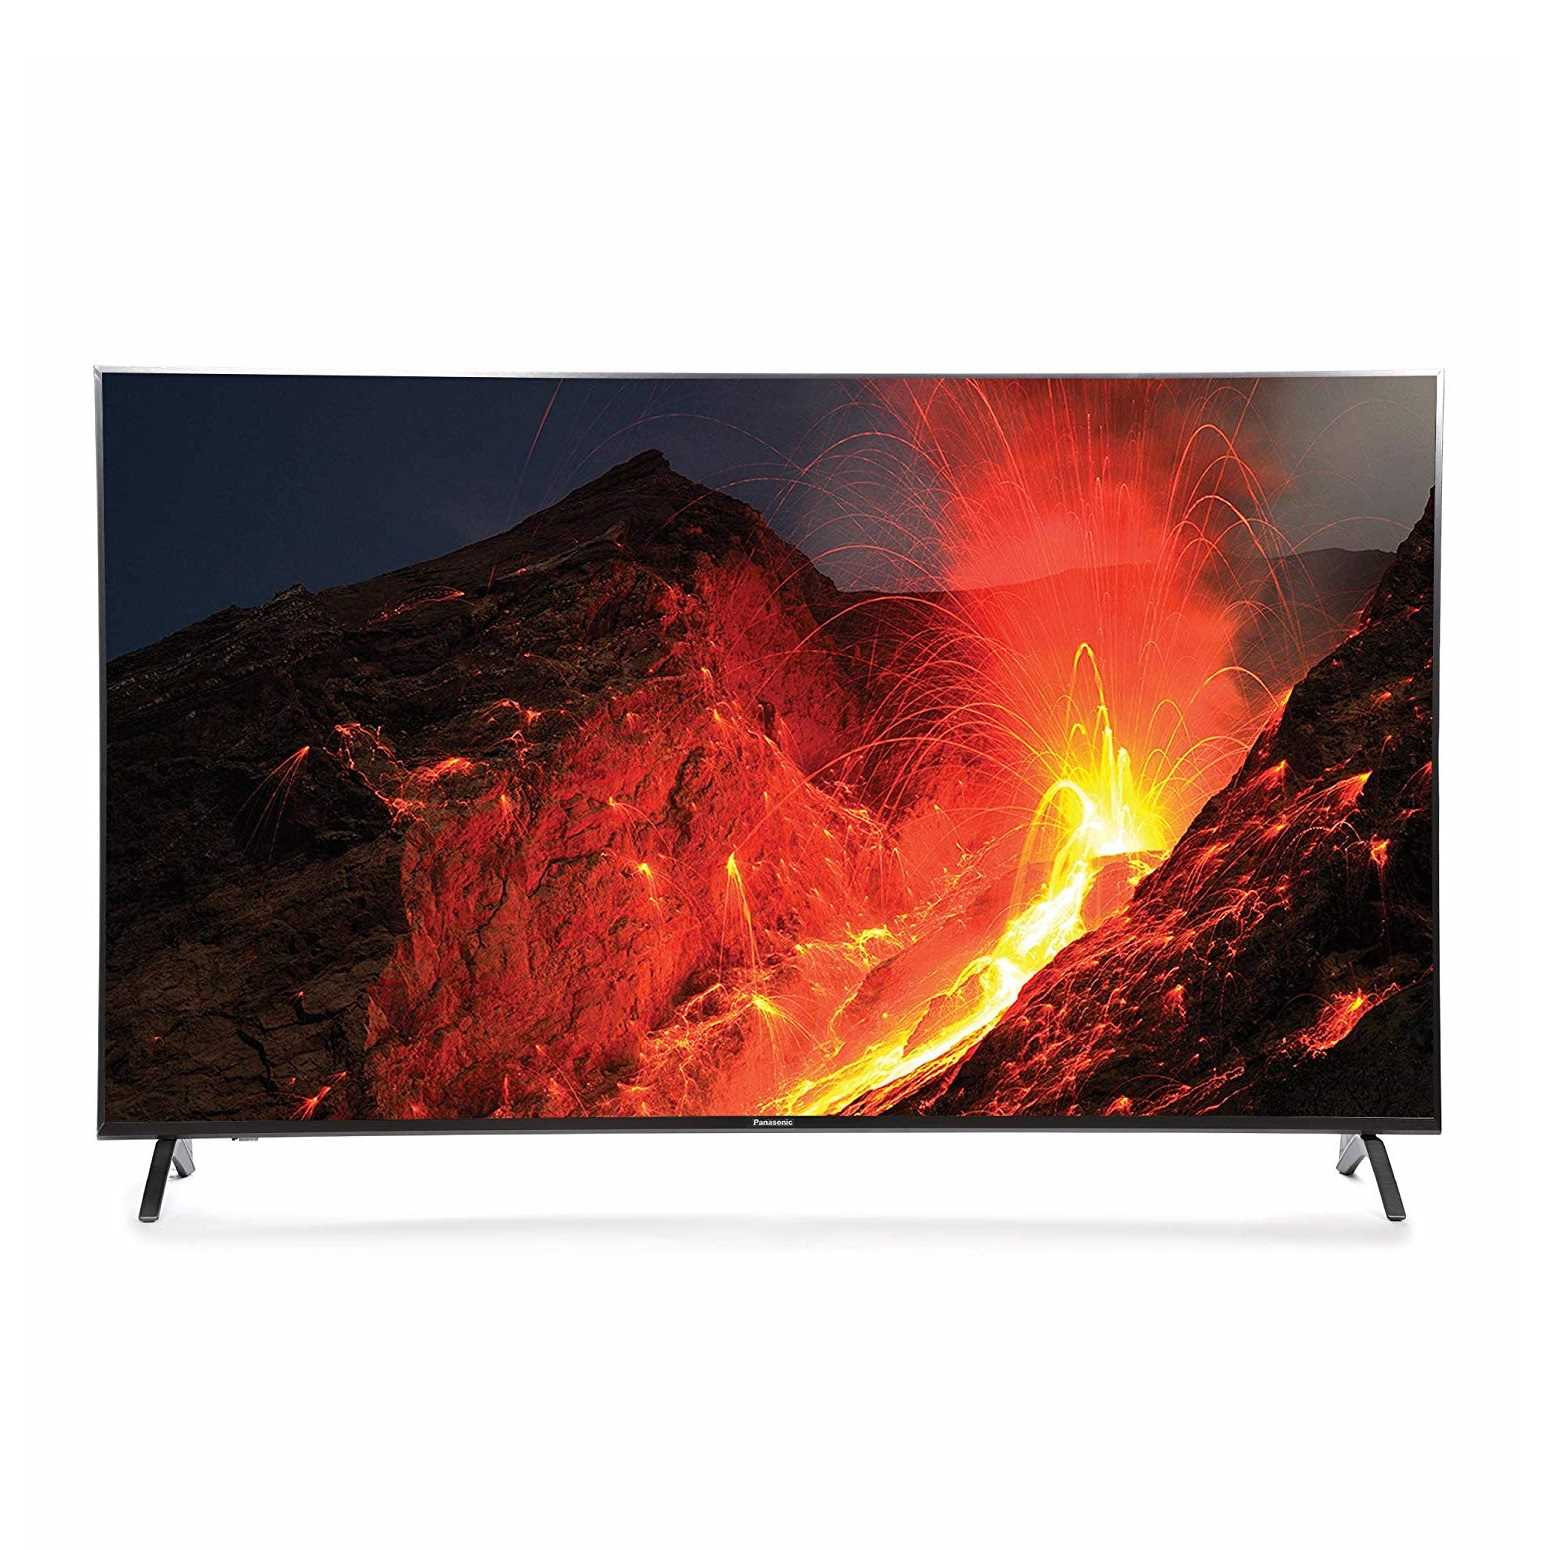 Panasonic TH-55FX730D 55 Inch 4K Ultra HD Smart LED Television